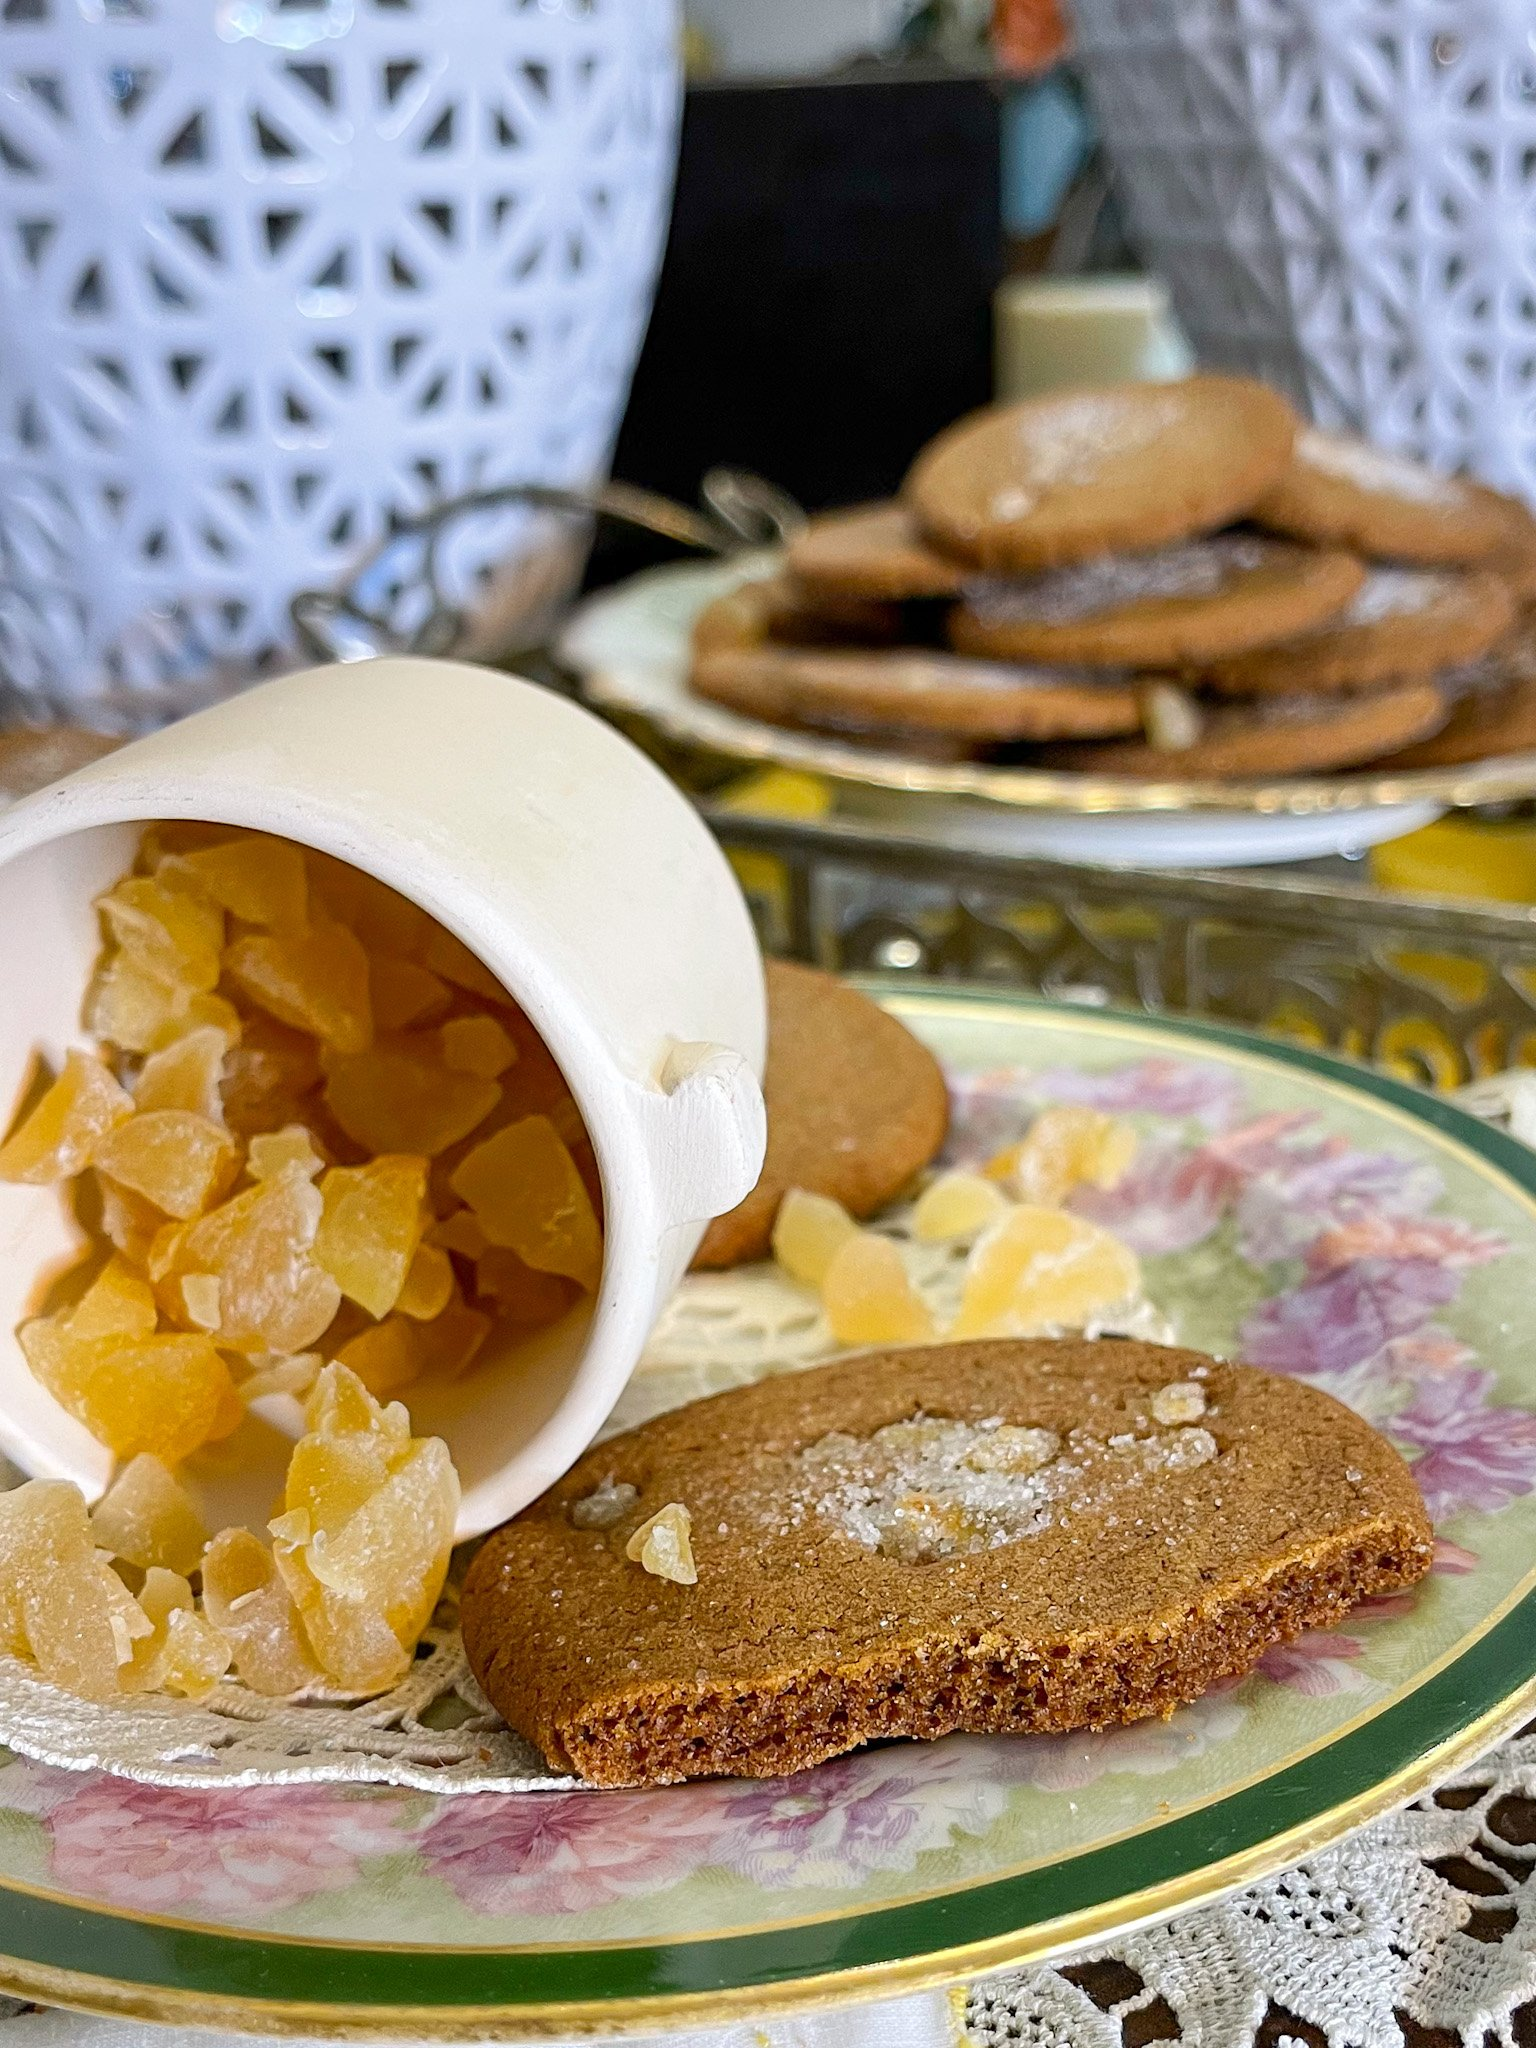 Hot Cakes Bakery - Crispy Crafted Candied Ginger Cookies 3